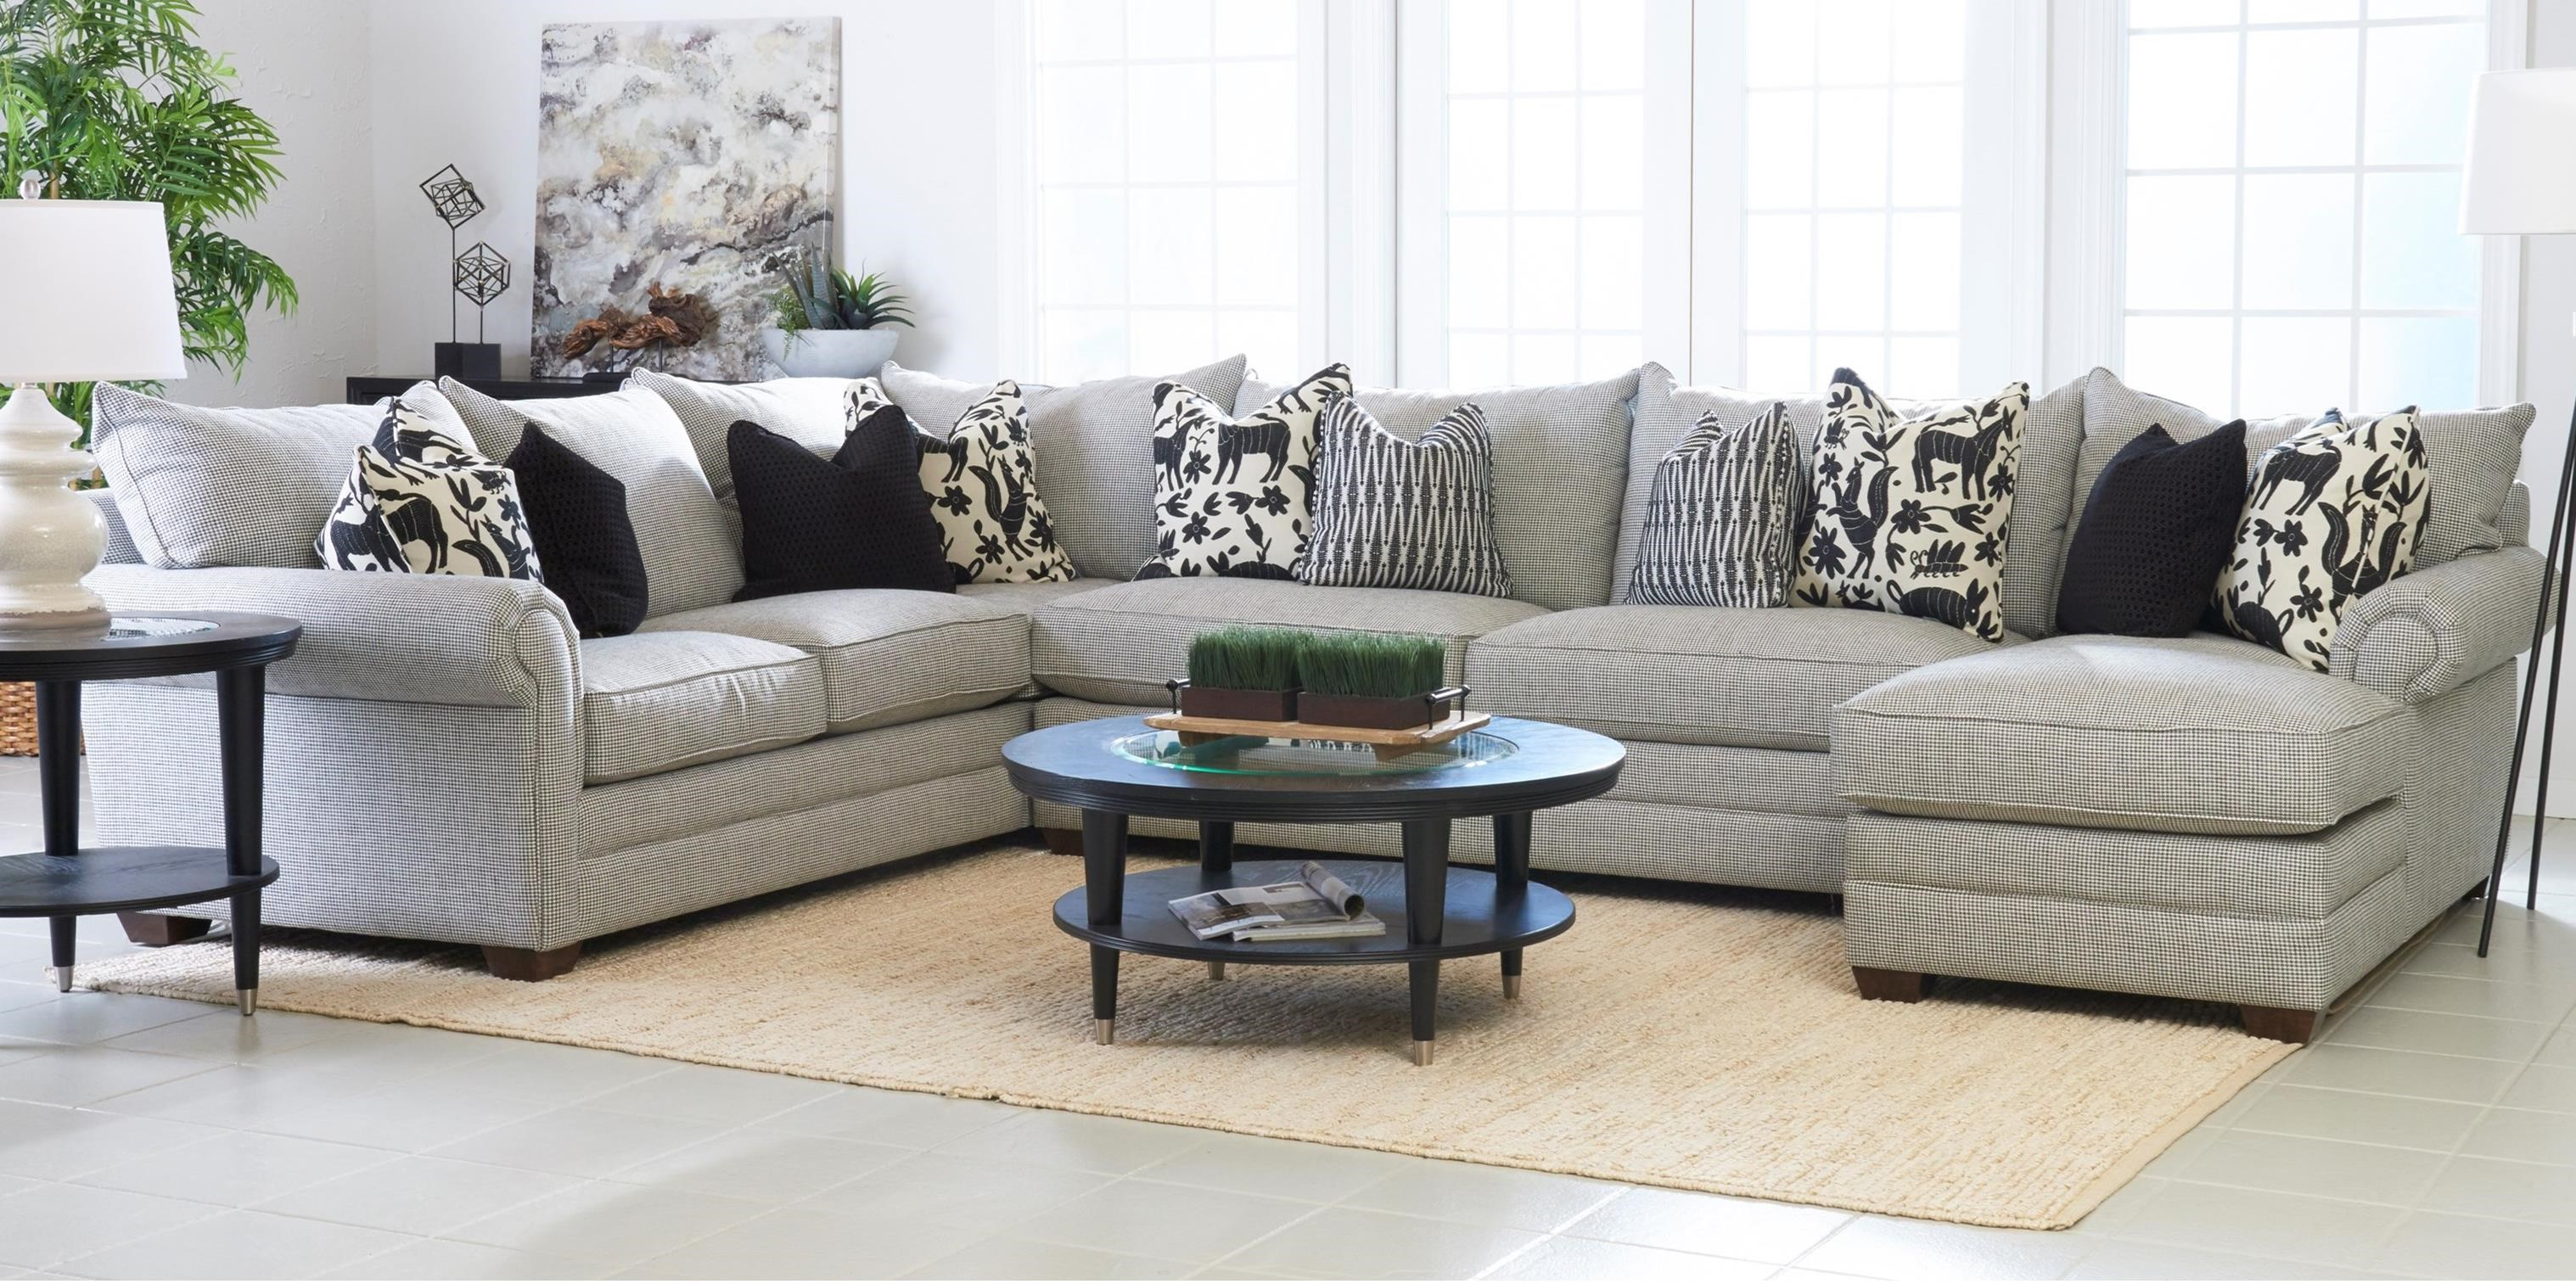 Huntley 3 Pc Sectional Sofa w/ RAF Chaise by Klaussner at Northeast Factory Direct